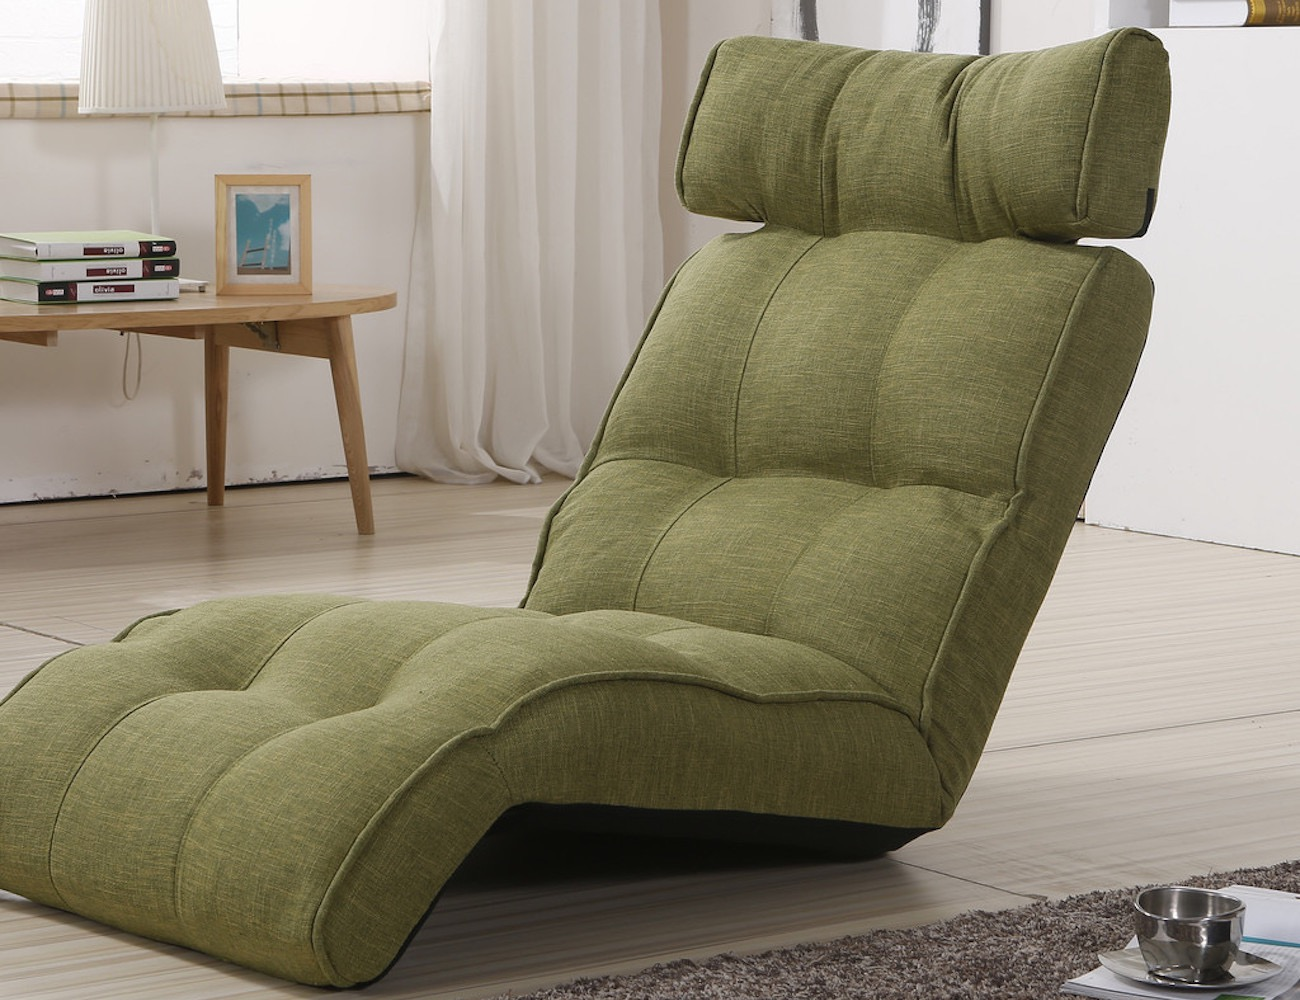 deluxe sofa chair by cozy kino review. Black Bedroom Furniture Sets. Home Design Ideas